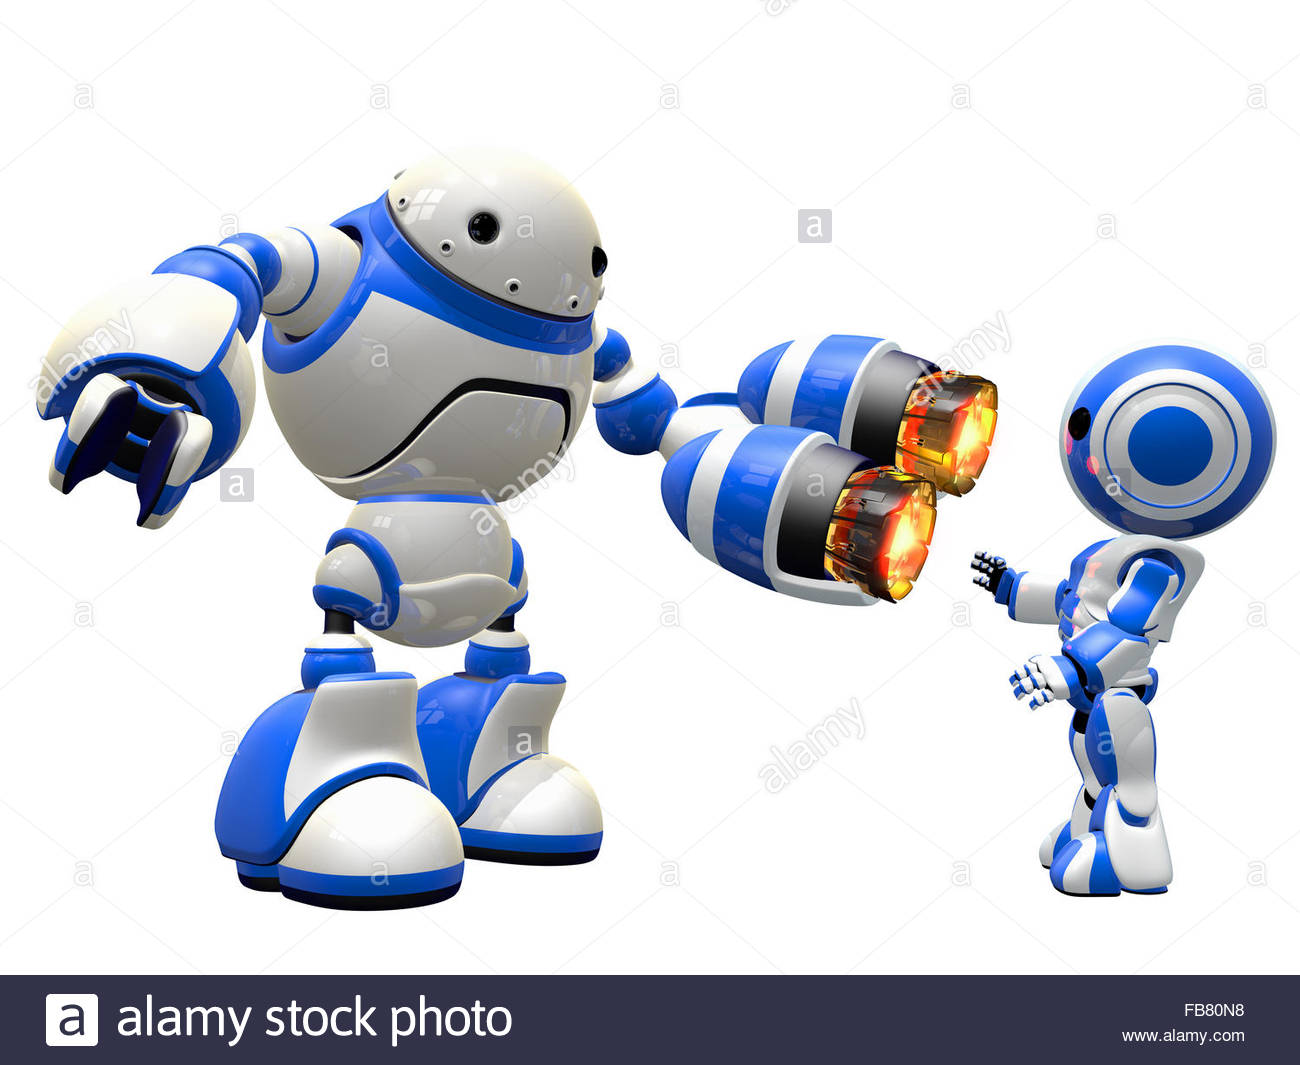 An Image Depicting Internet Security, In A Fictional Sense. Robot.